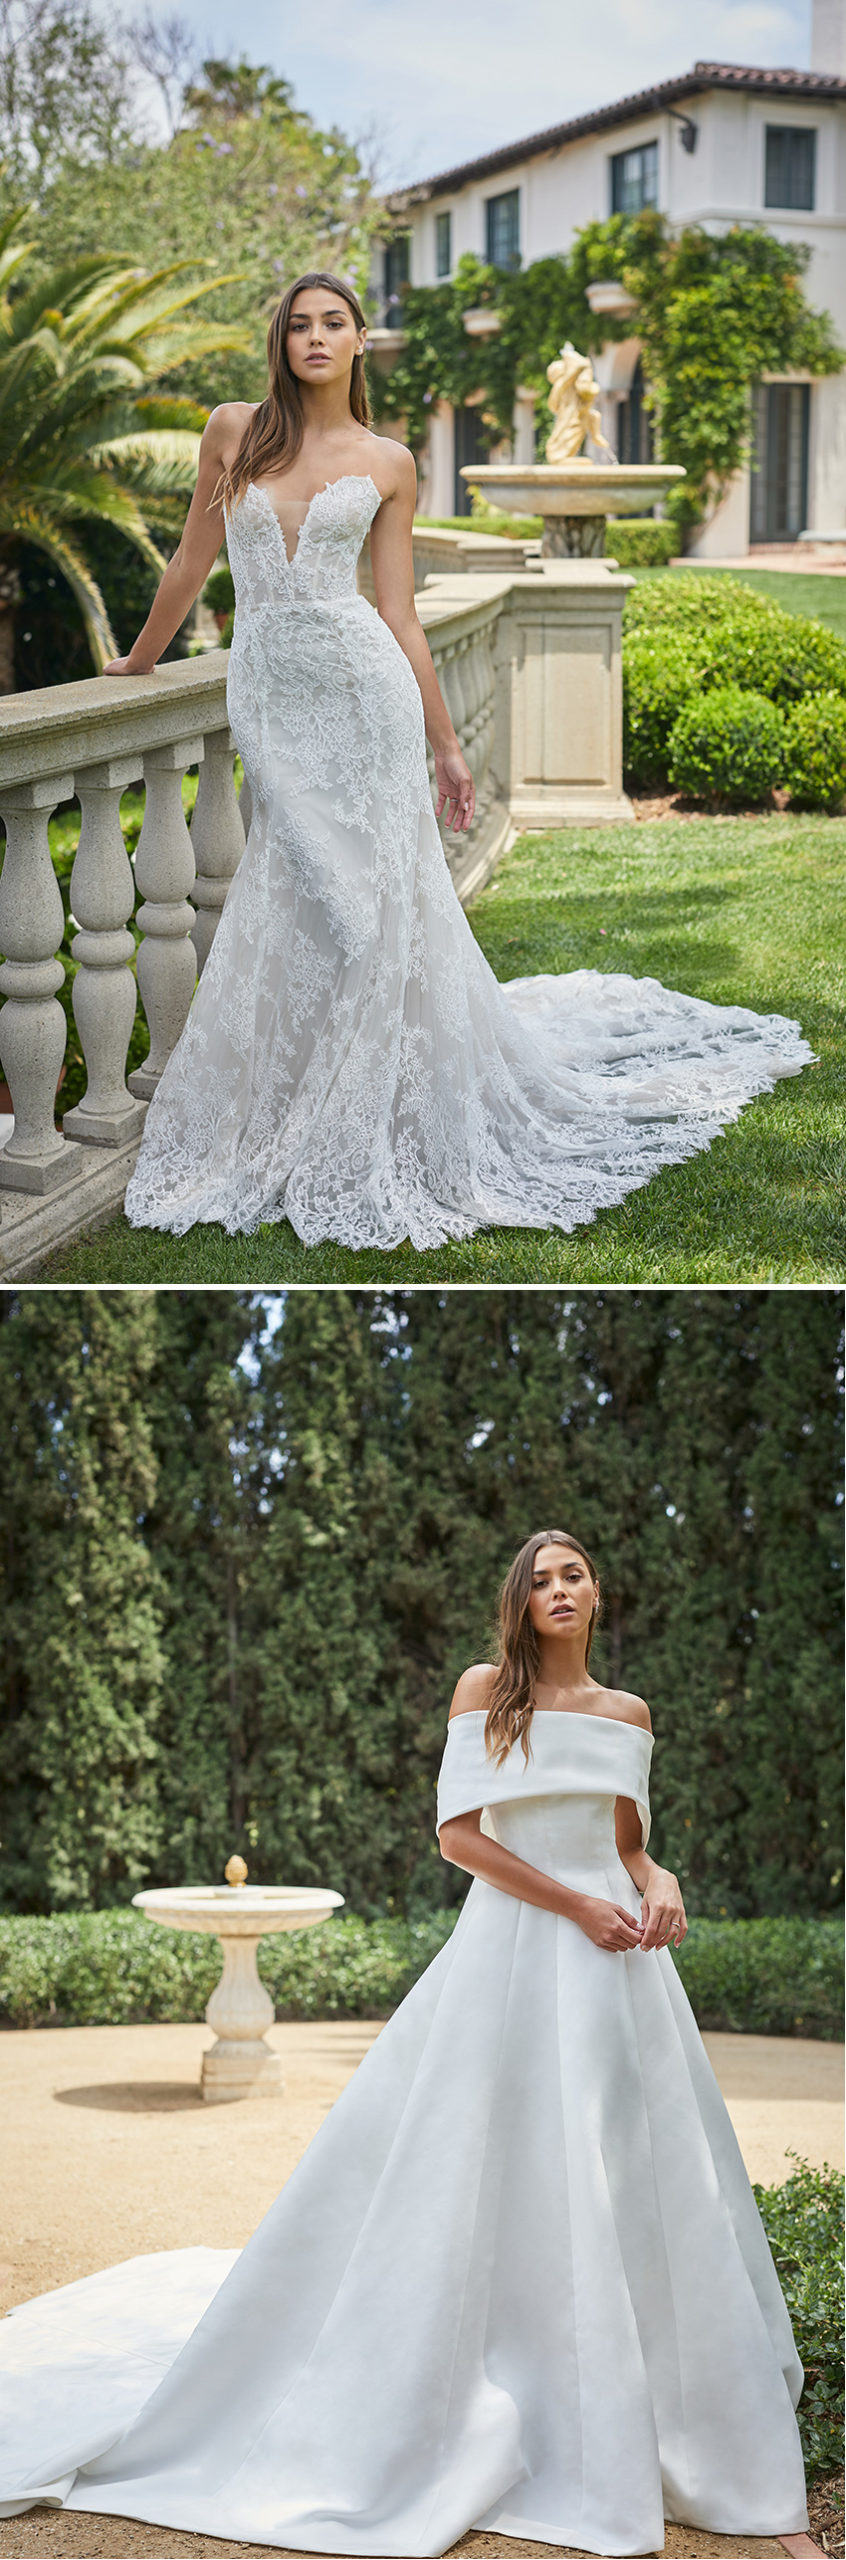 Monique Lhuillier Spring 2021 bridal collection features regal proportions as seen in Perfect Wedding Magazine